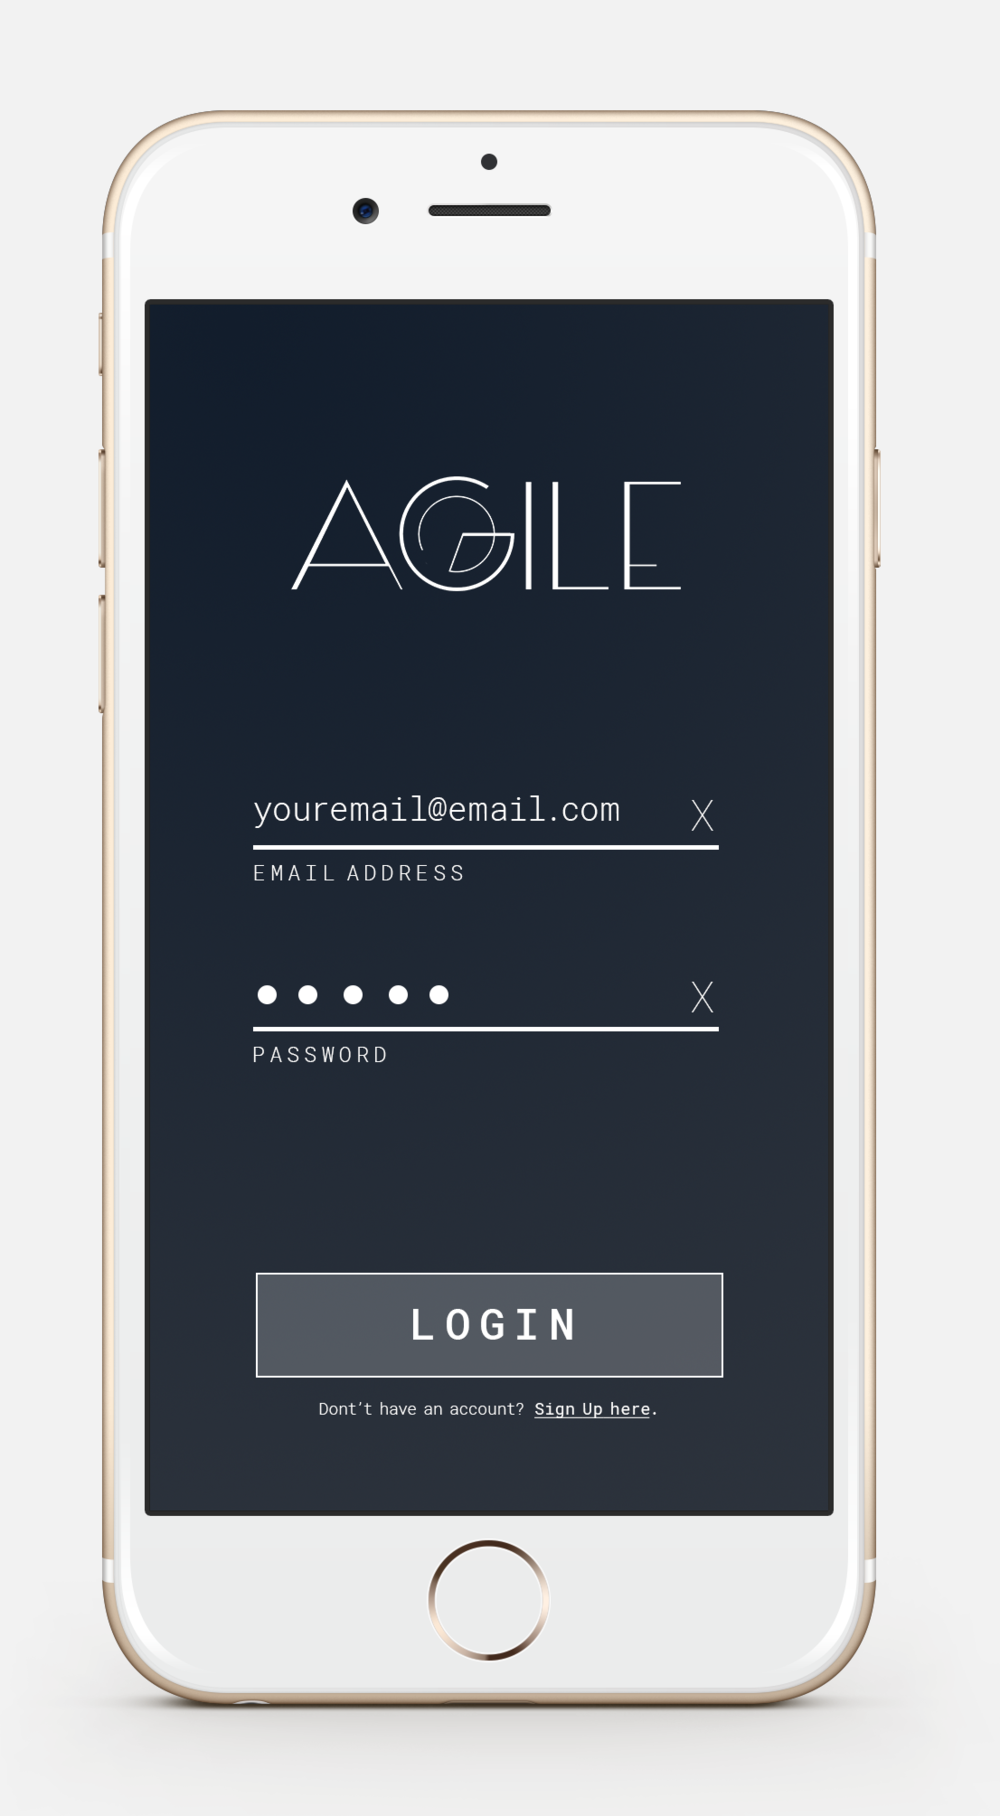 agile-intro-login-filled-in.png